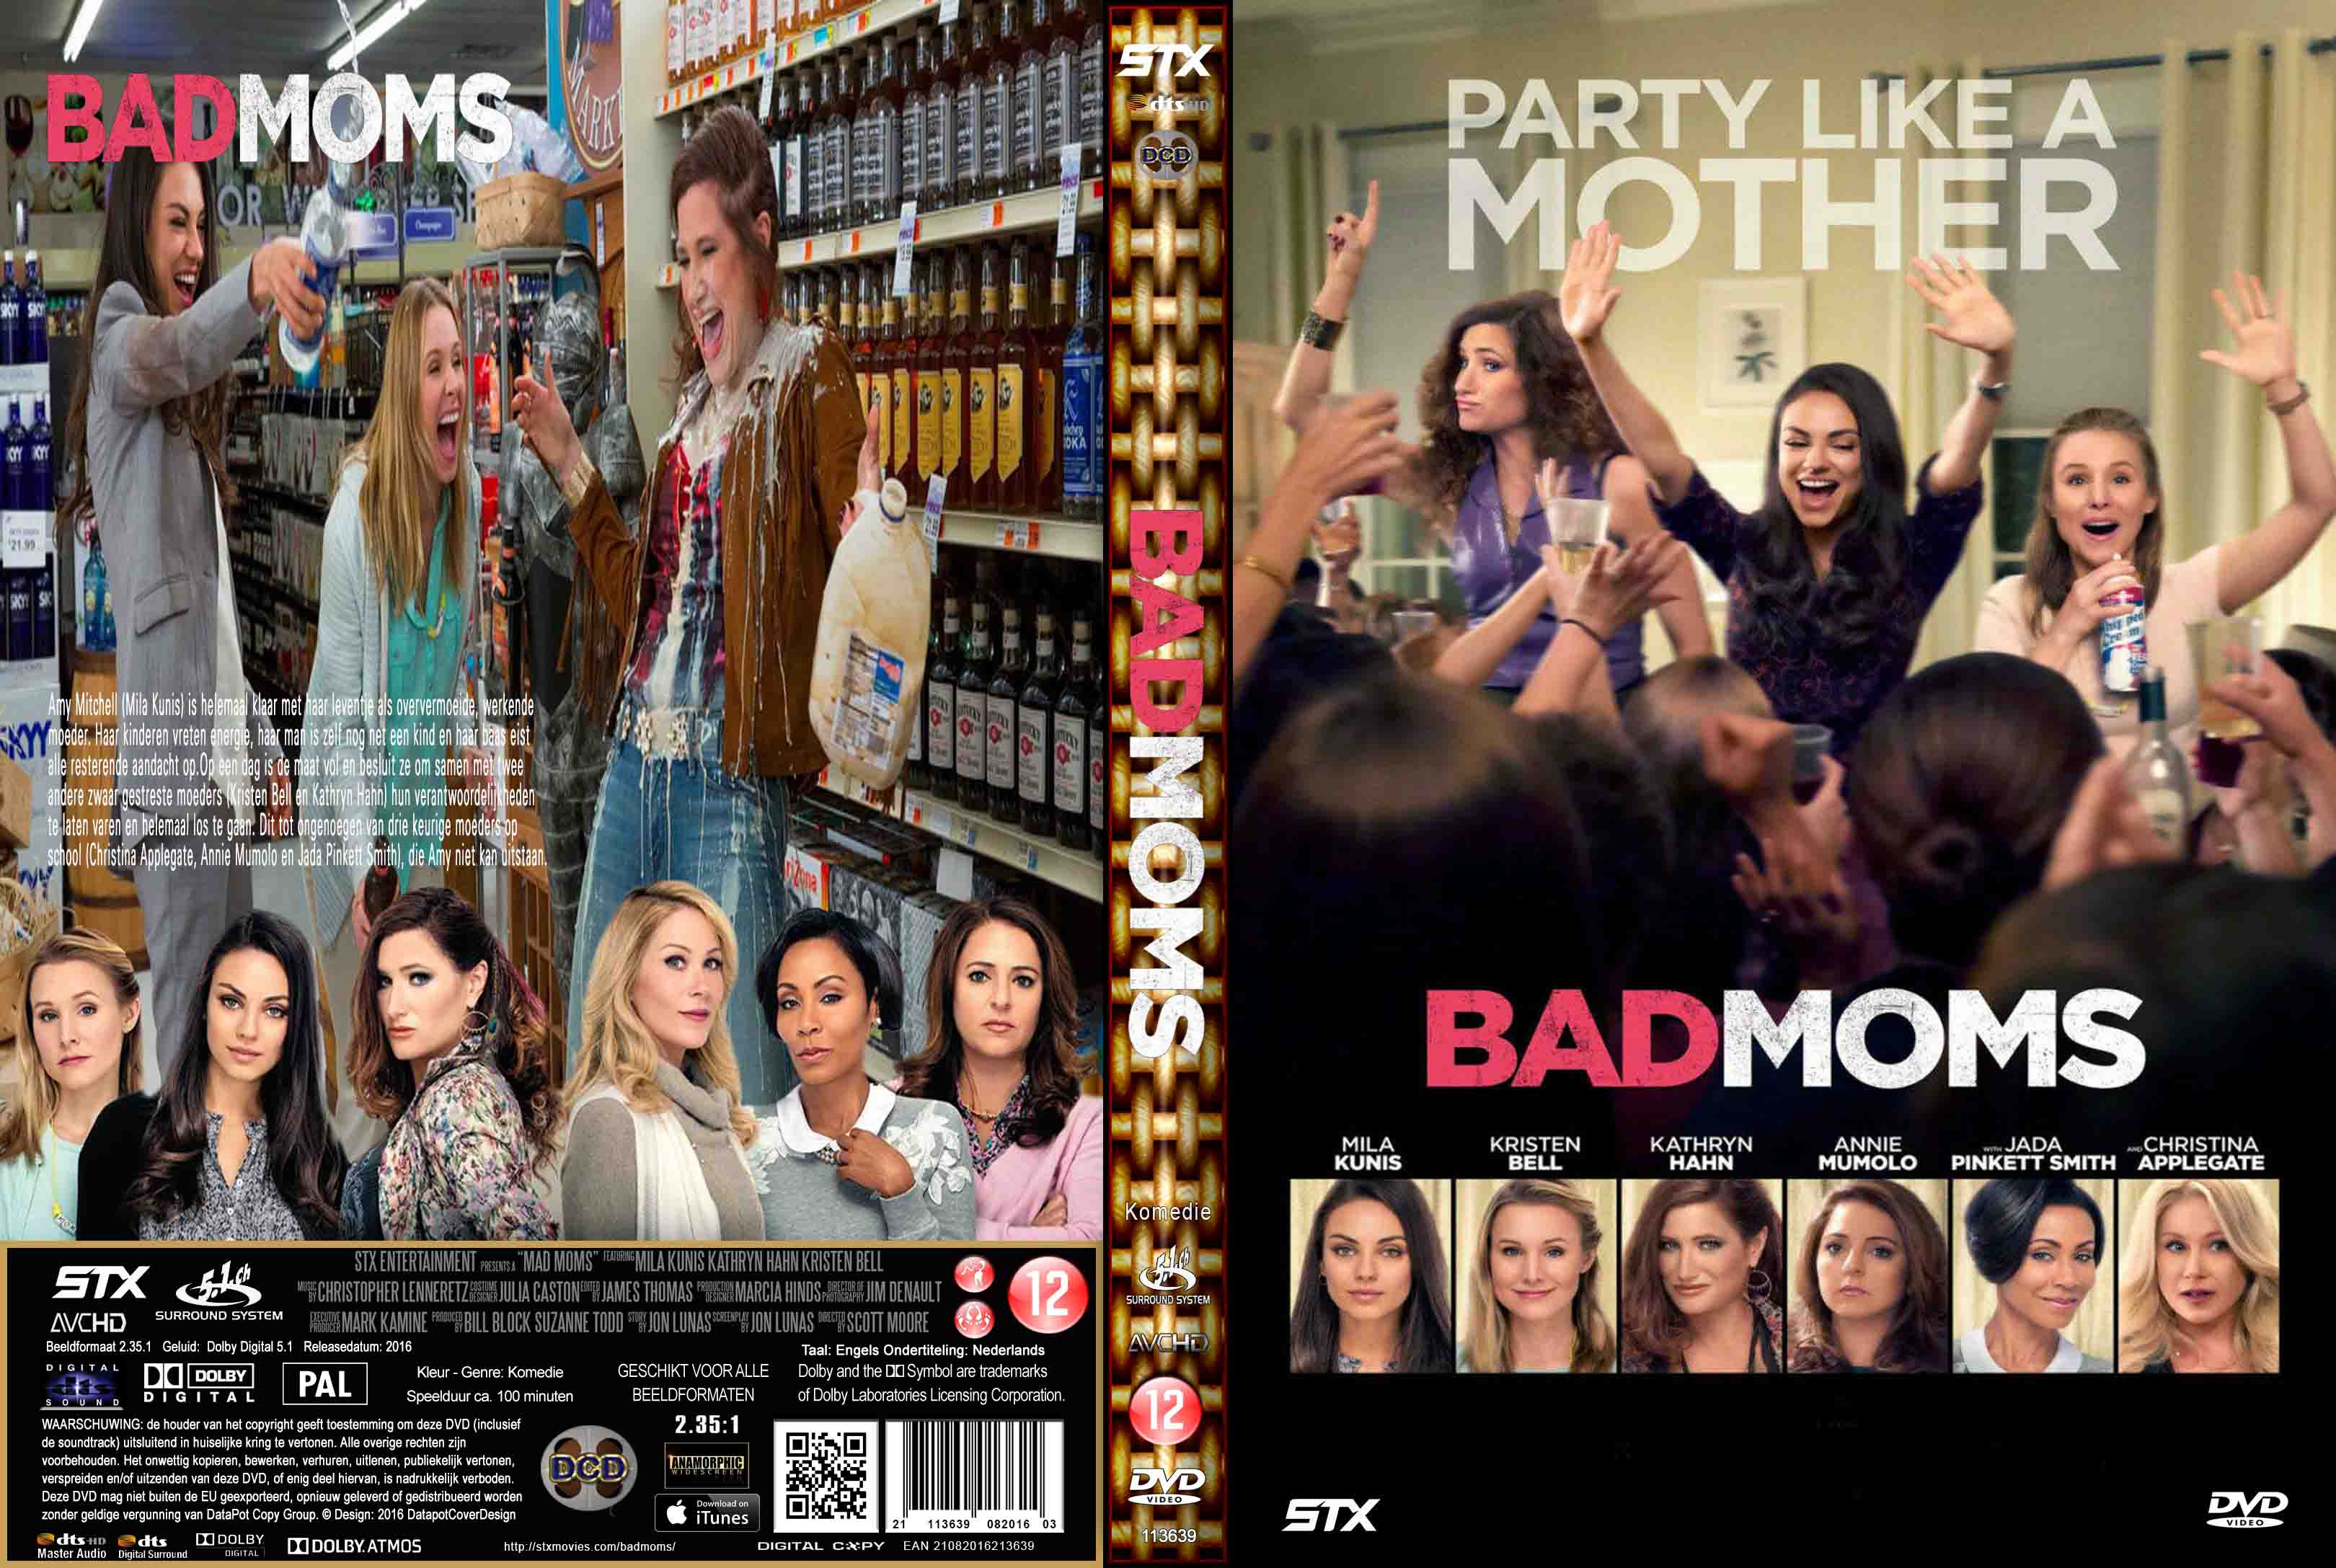 bad moms 2016 full movie download